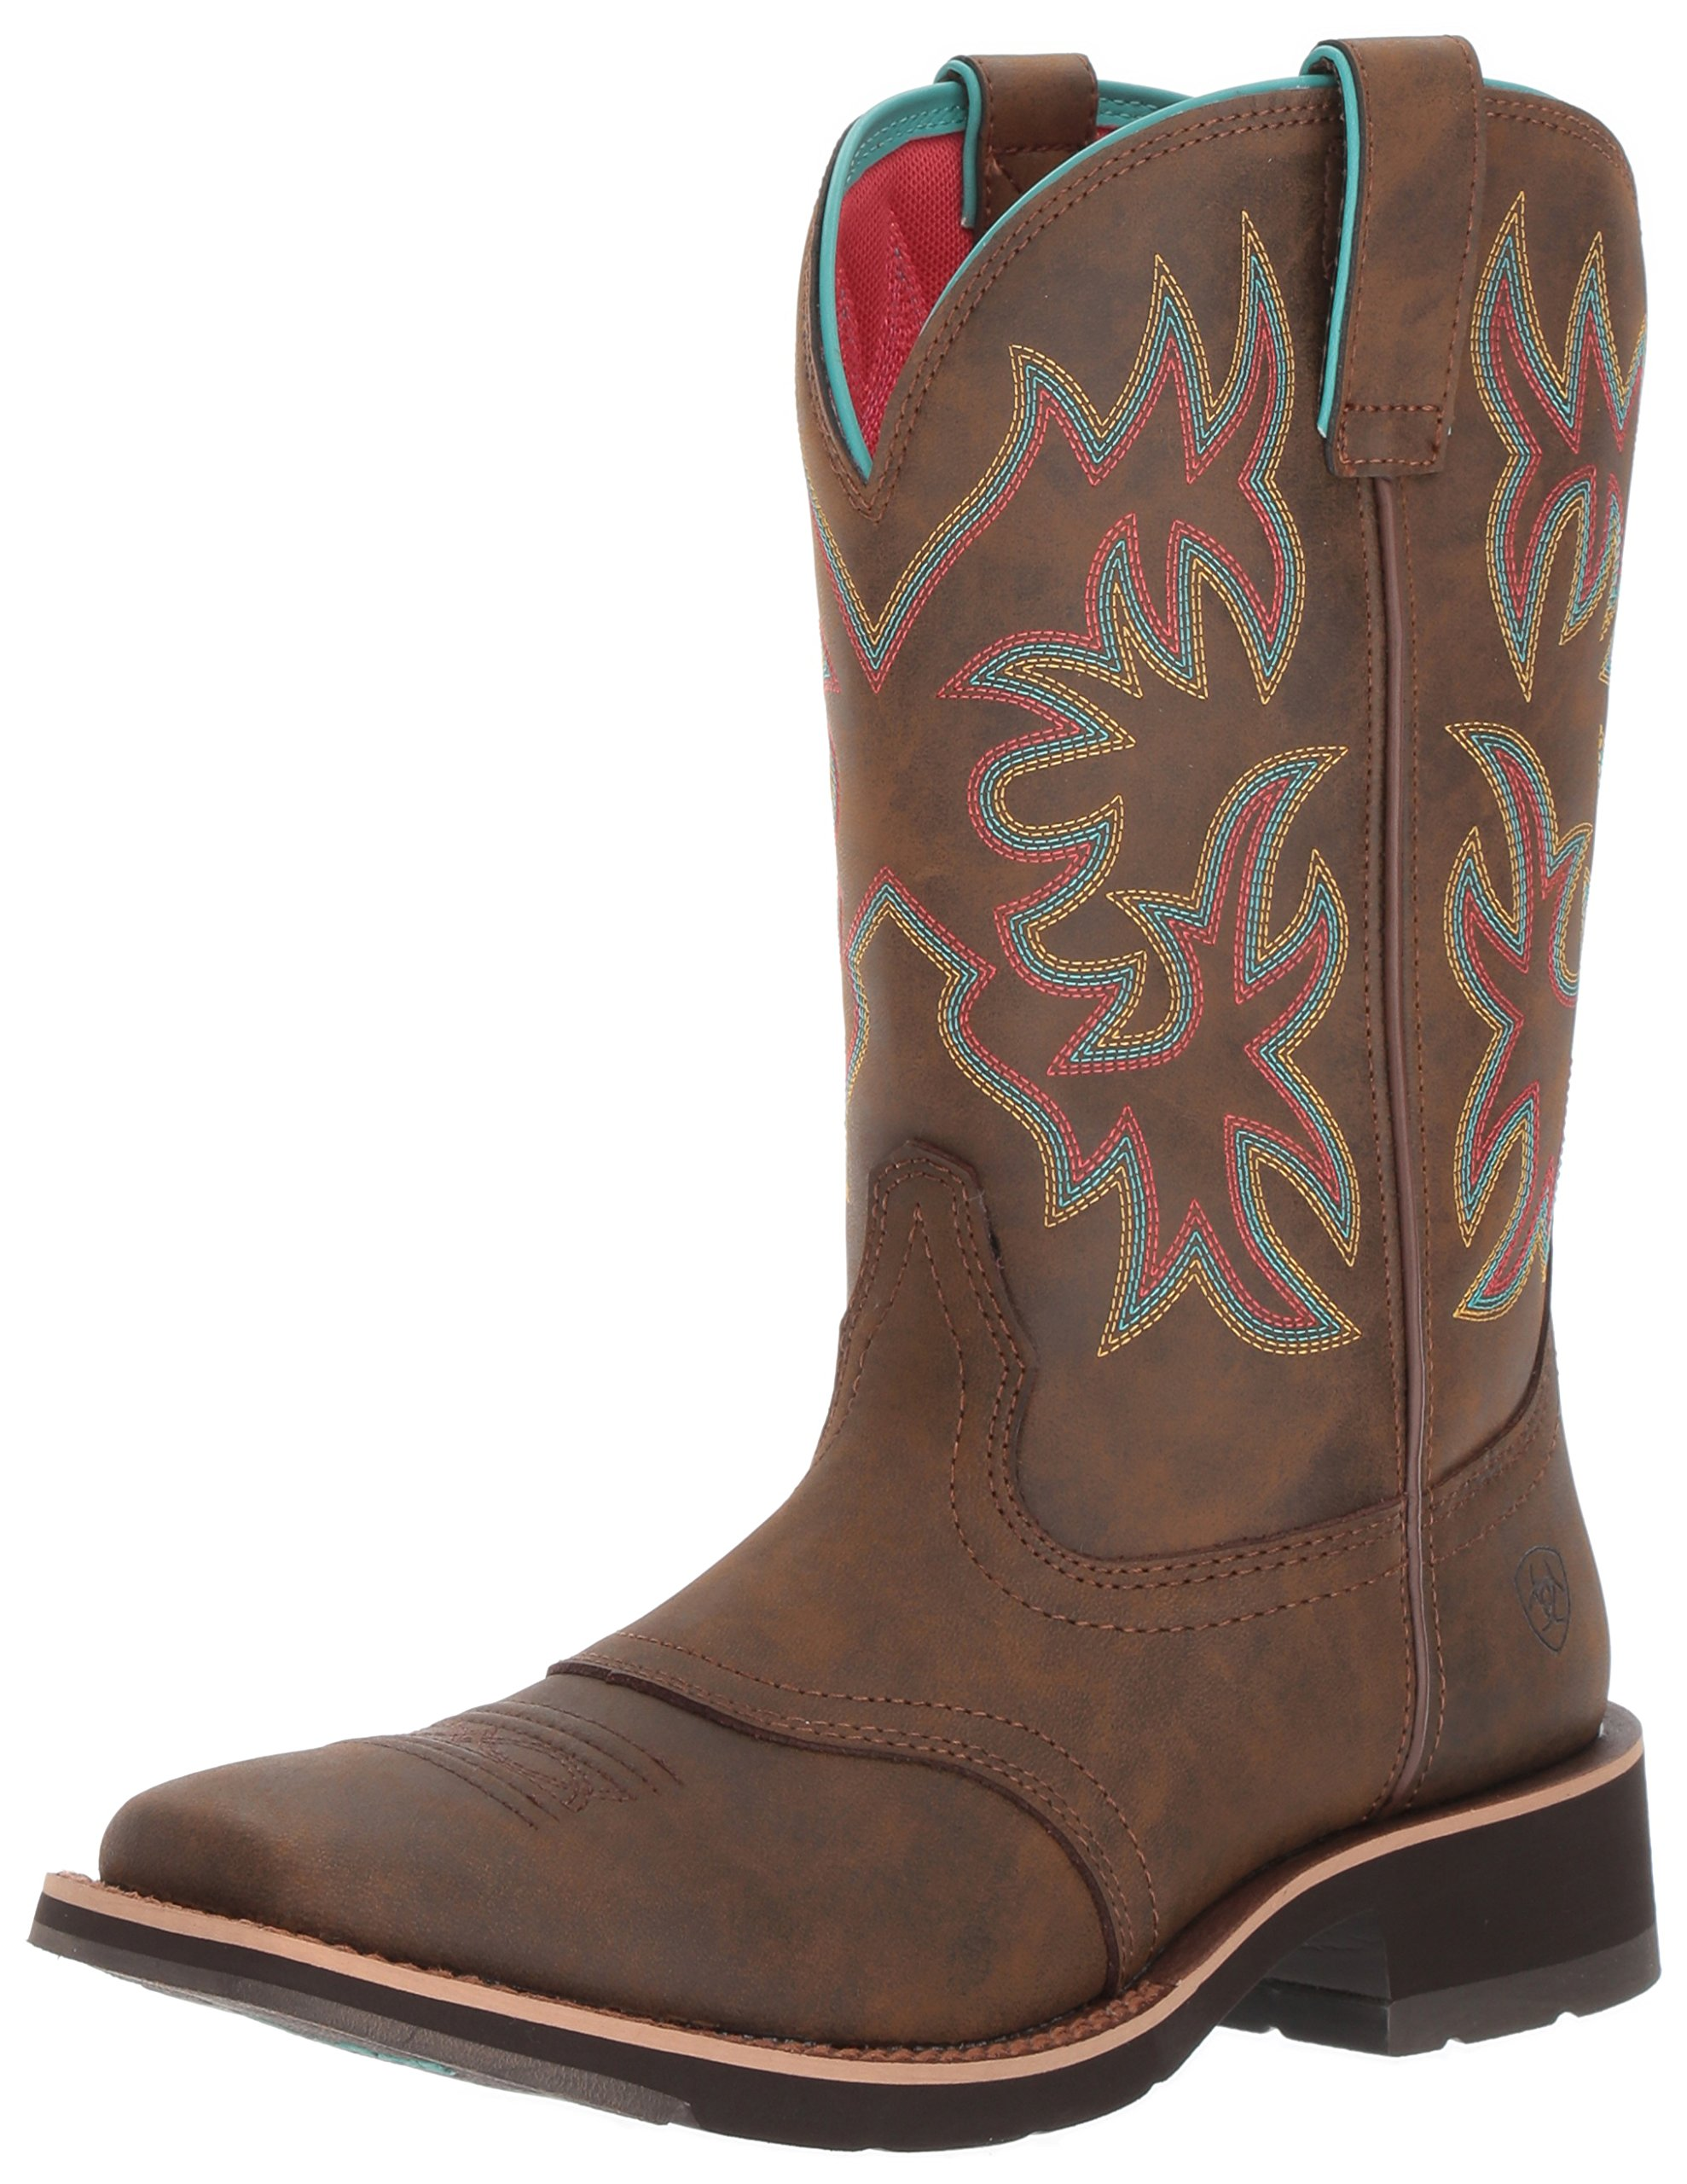 Ariat Women's Delilah Work Boot, Toasted Brown, 10 B US by Ariat